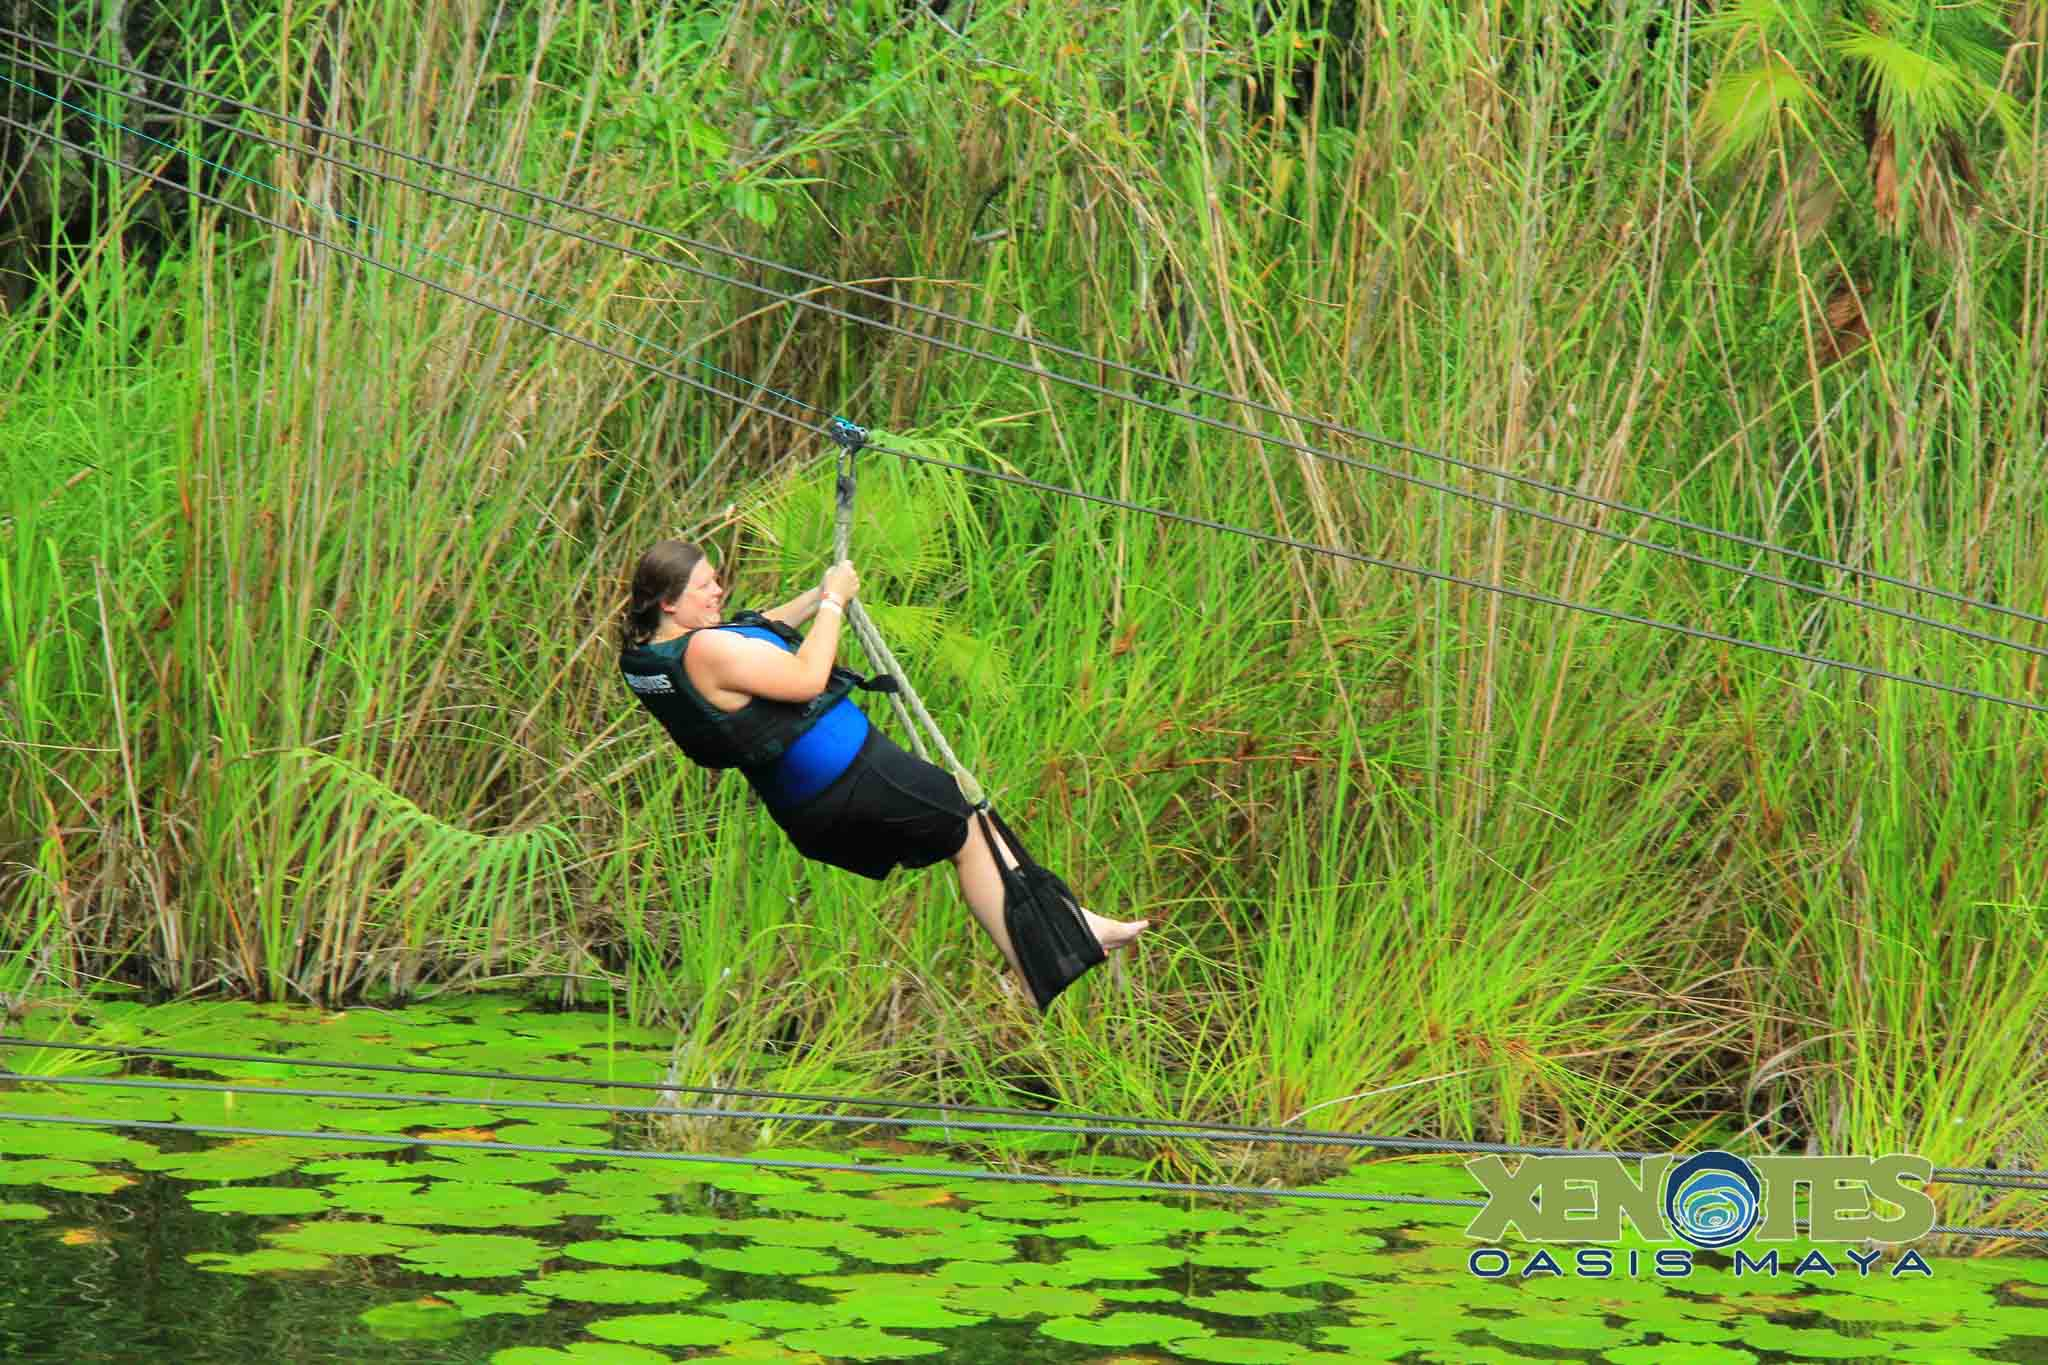 Woman zip lining into the water over lily pads